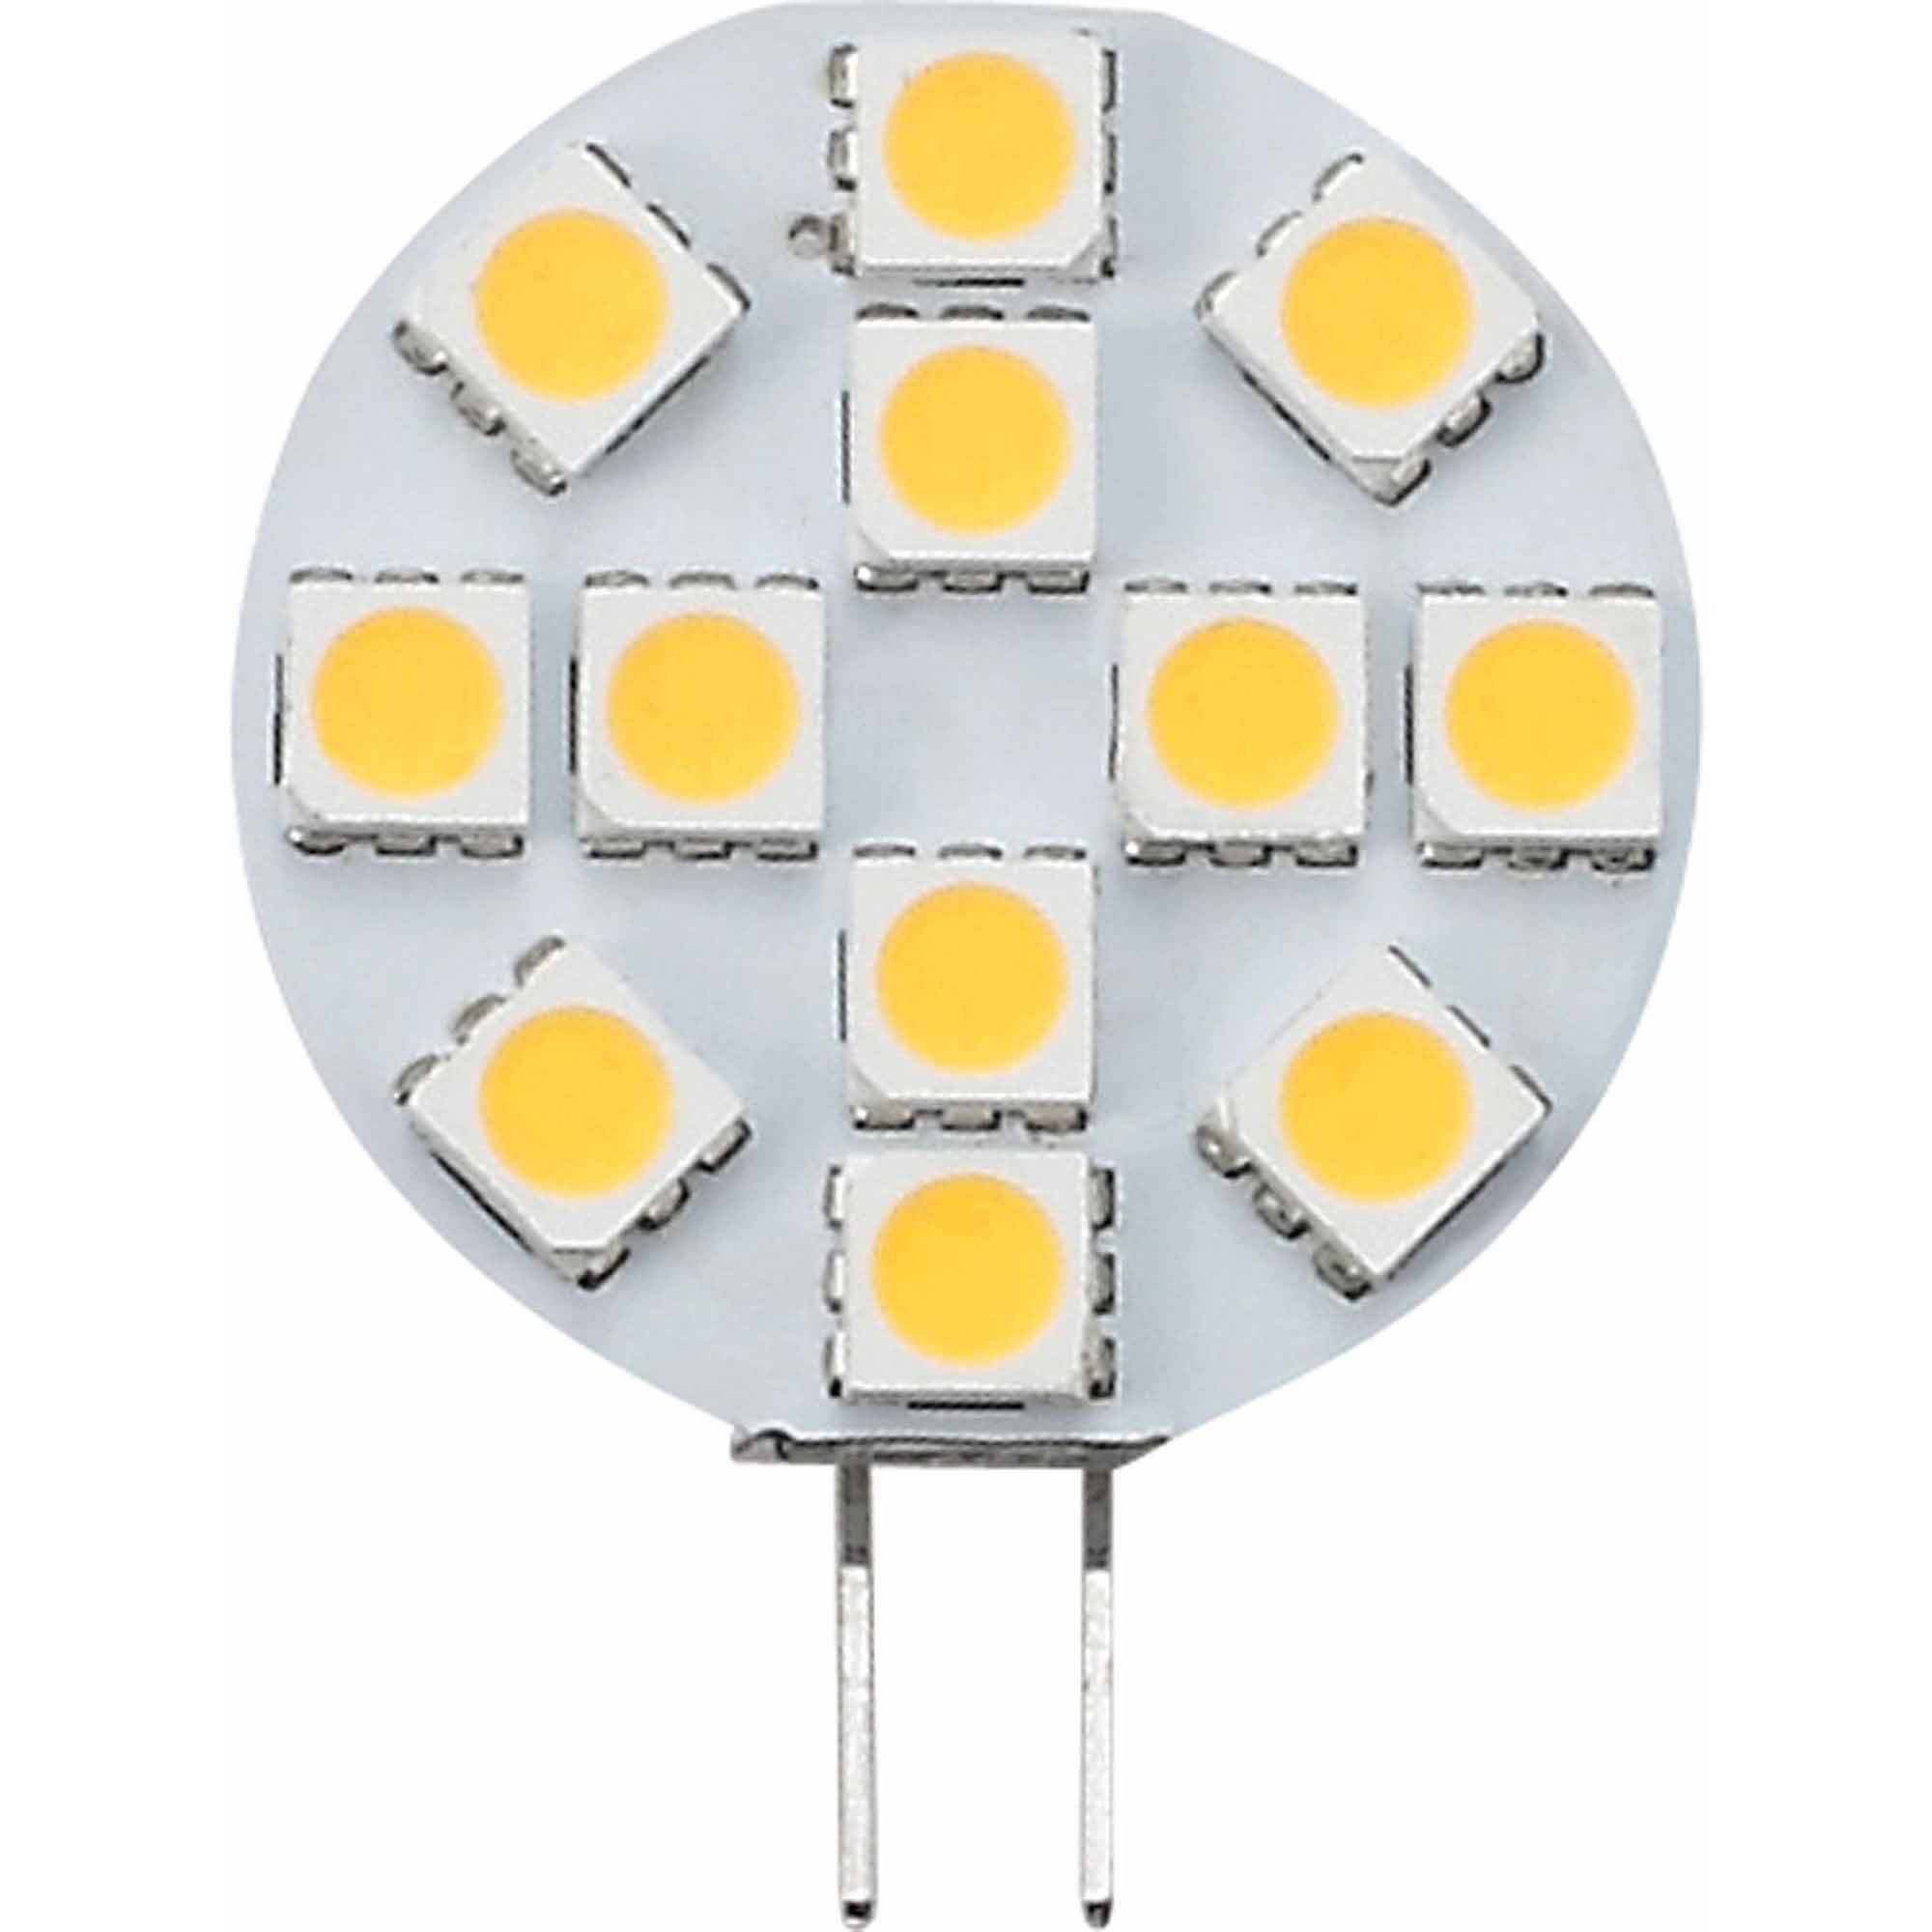 Ming's Mark 12V LED BUlb with G4 Base and L Back Pins, 150 Lumens, Warm White